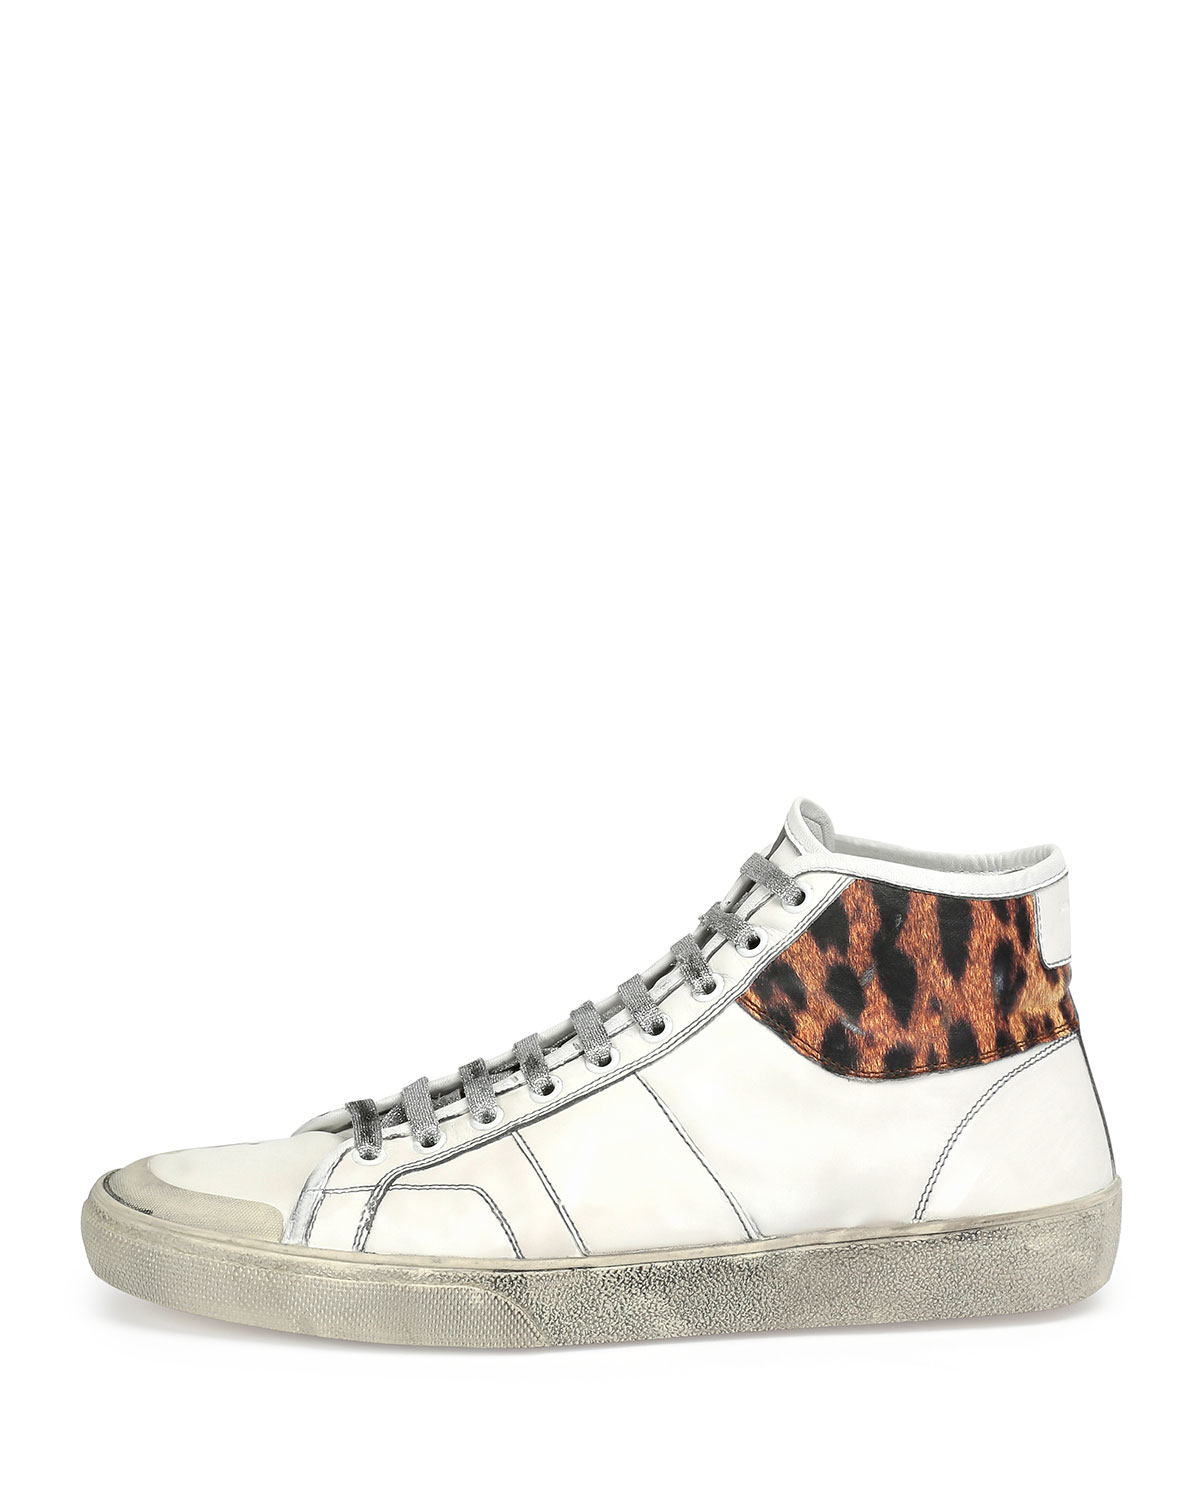 637bbb665712 Lyst - Saint Laurent Leopard-trim Leather High-top Sneaker in White ...